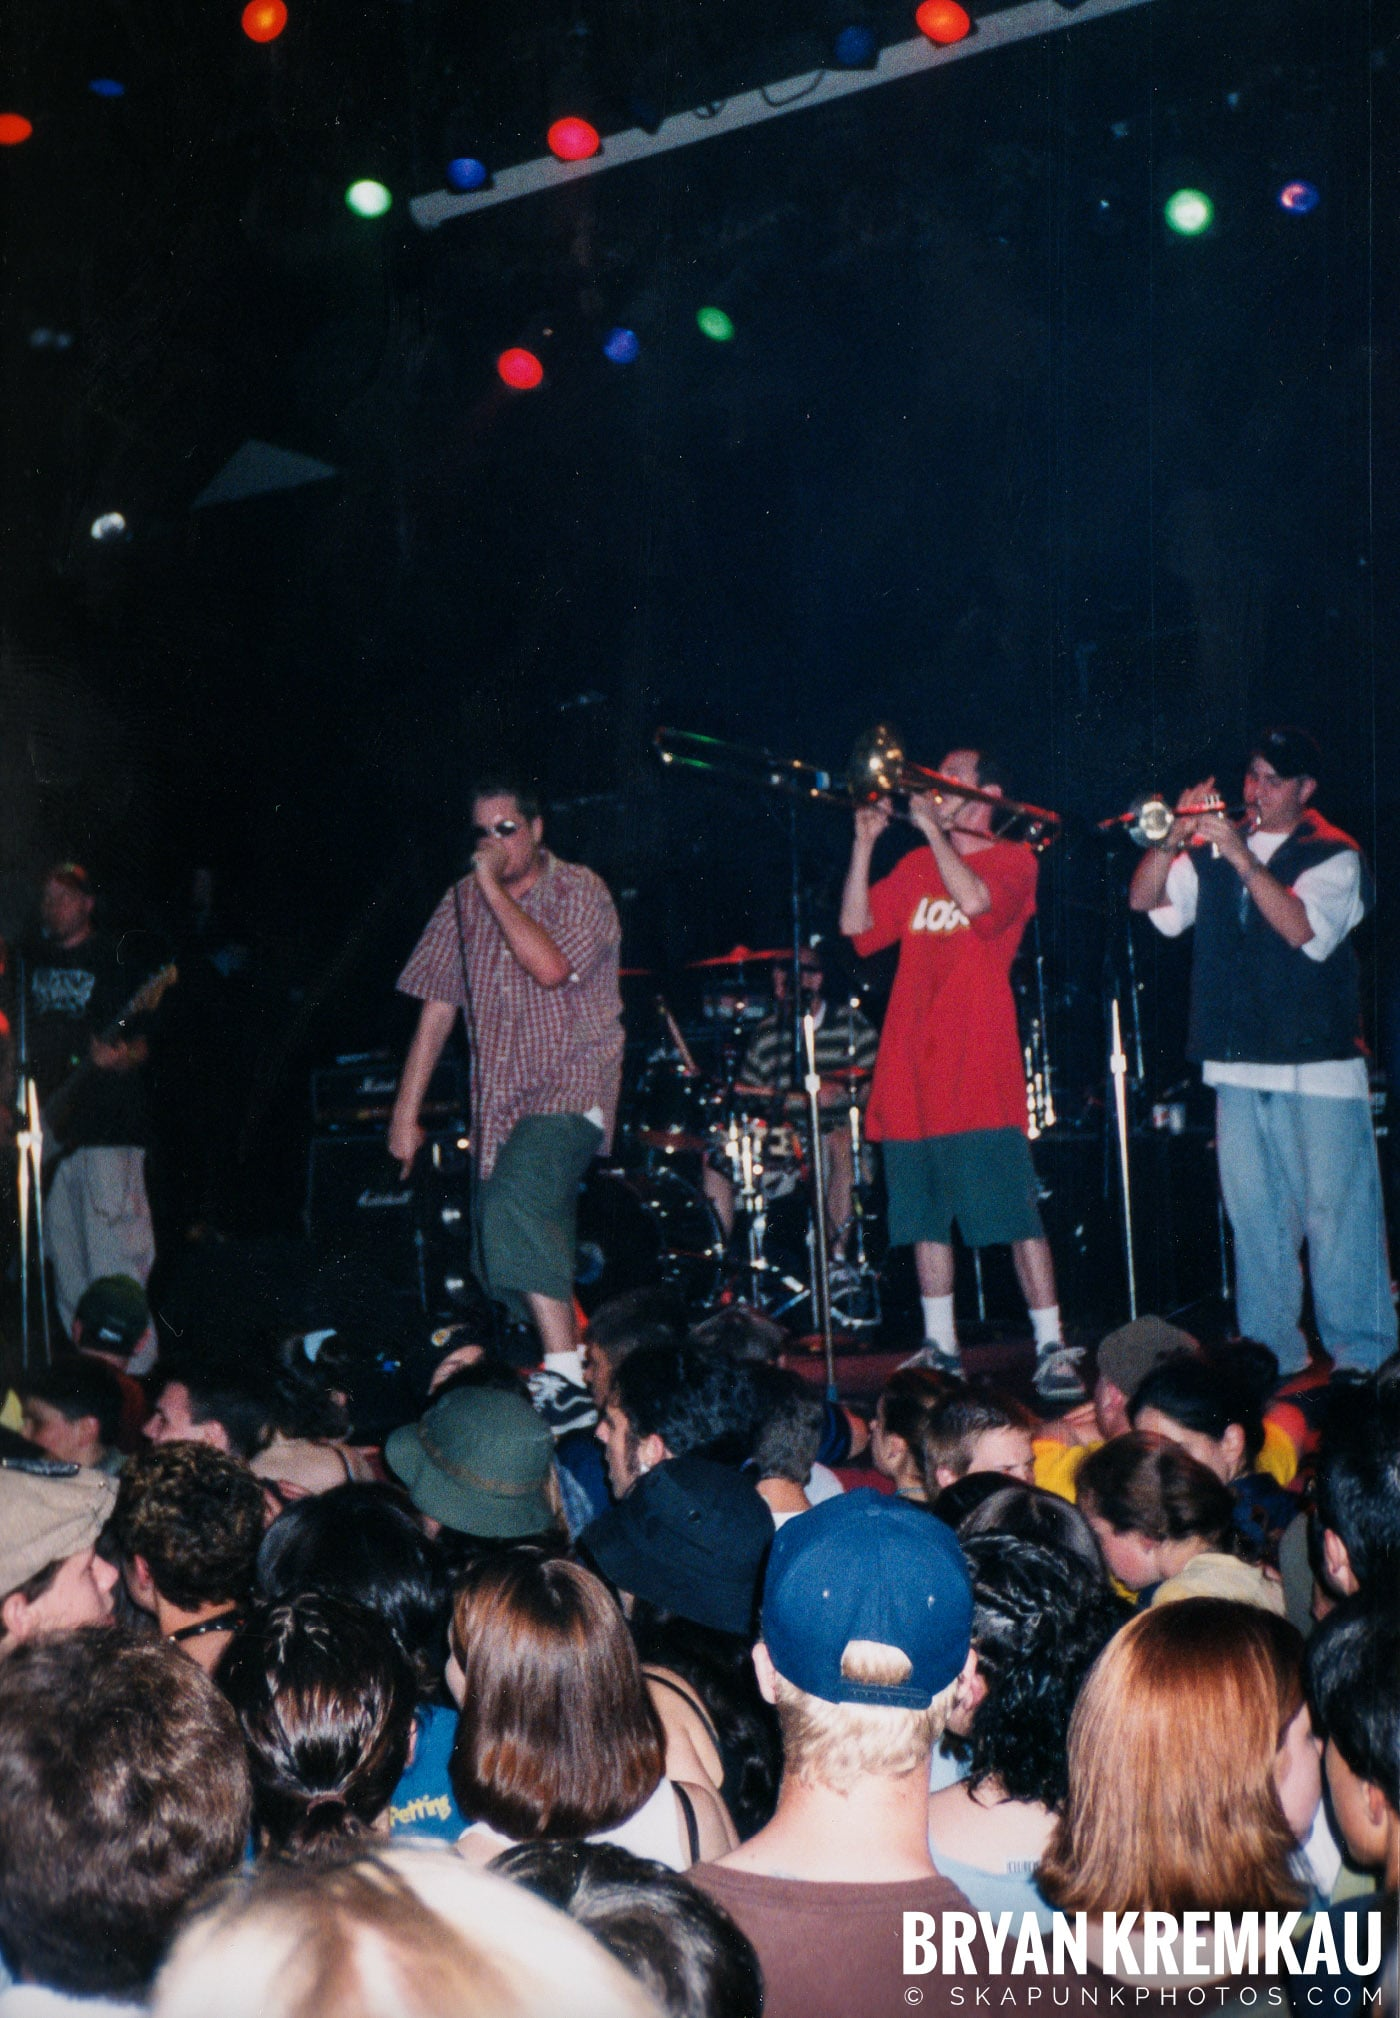 Sgt Scagnetti @ The Chance, Poughkeepsie, NY - 1998 (3)